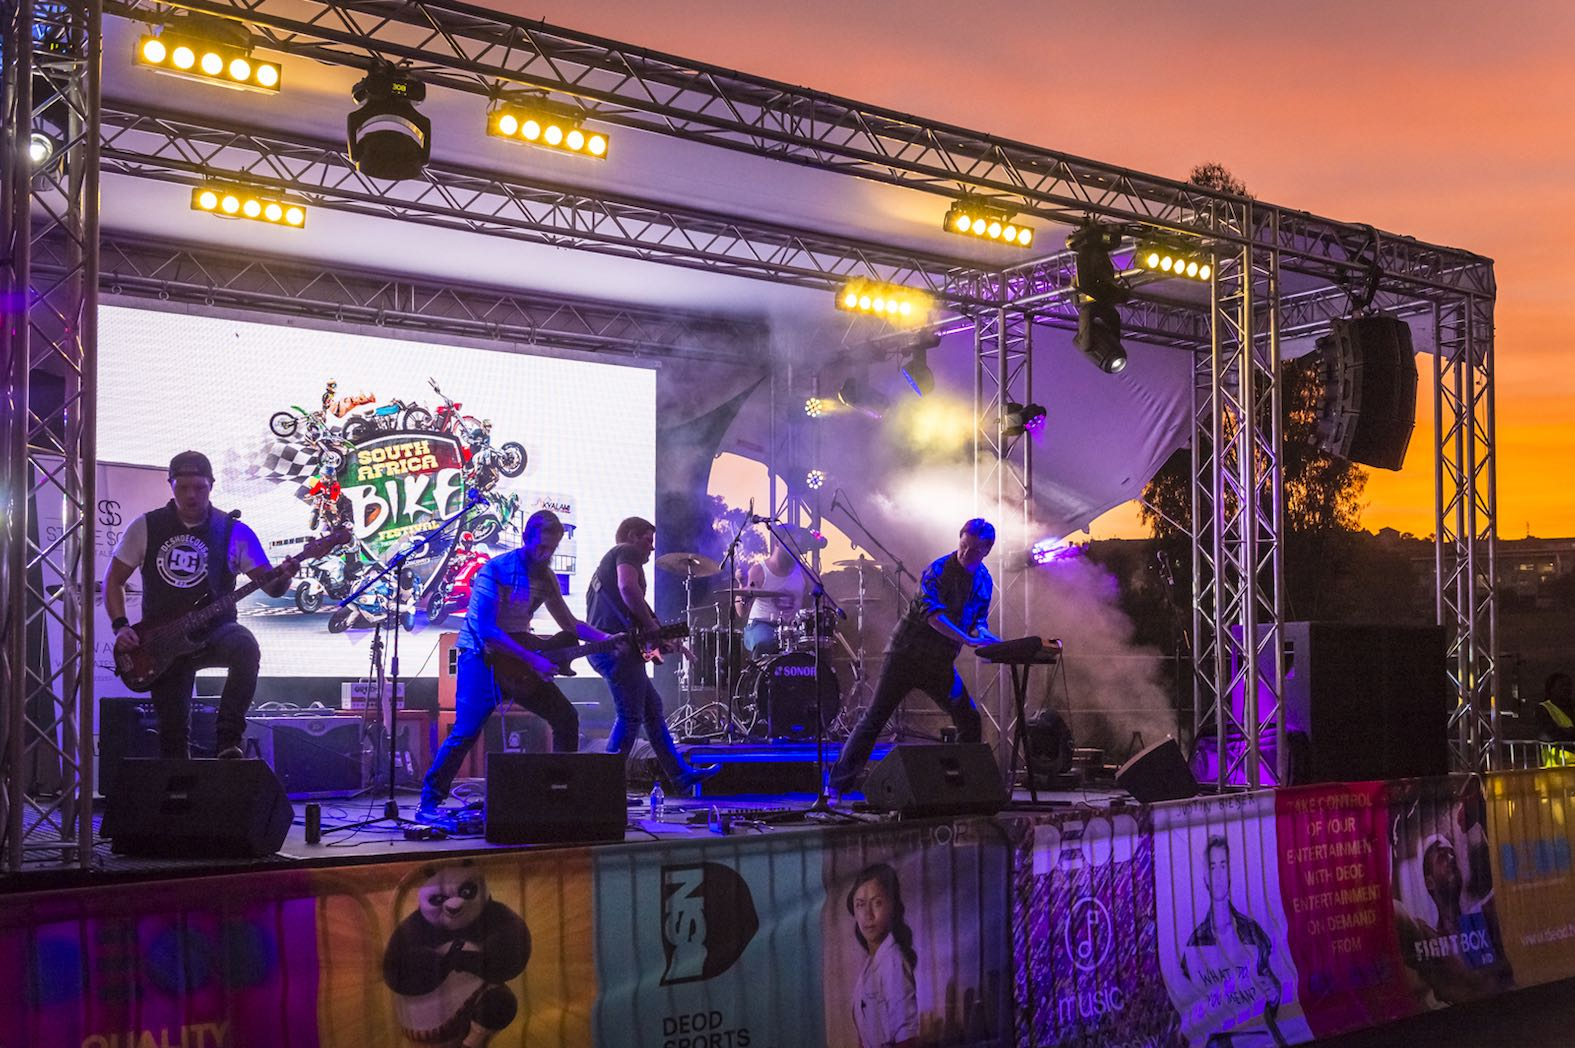 South African bands entertaining the crowds at the SA Bike Fest